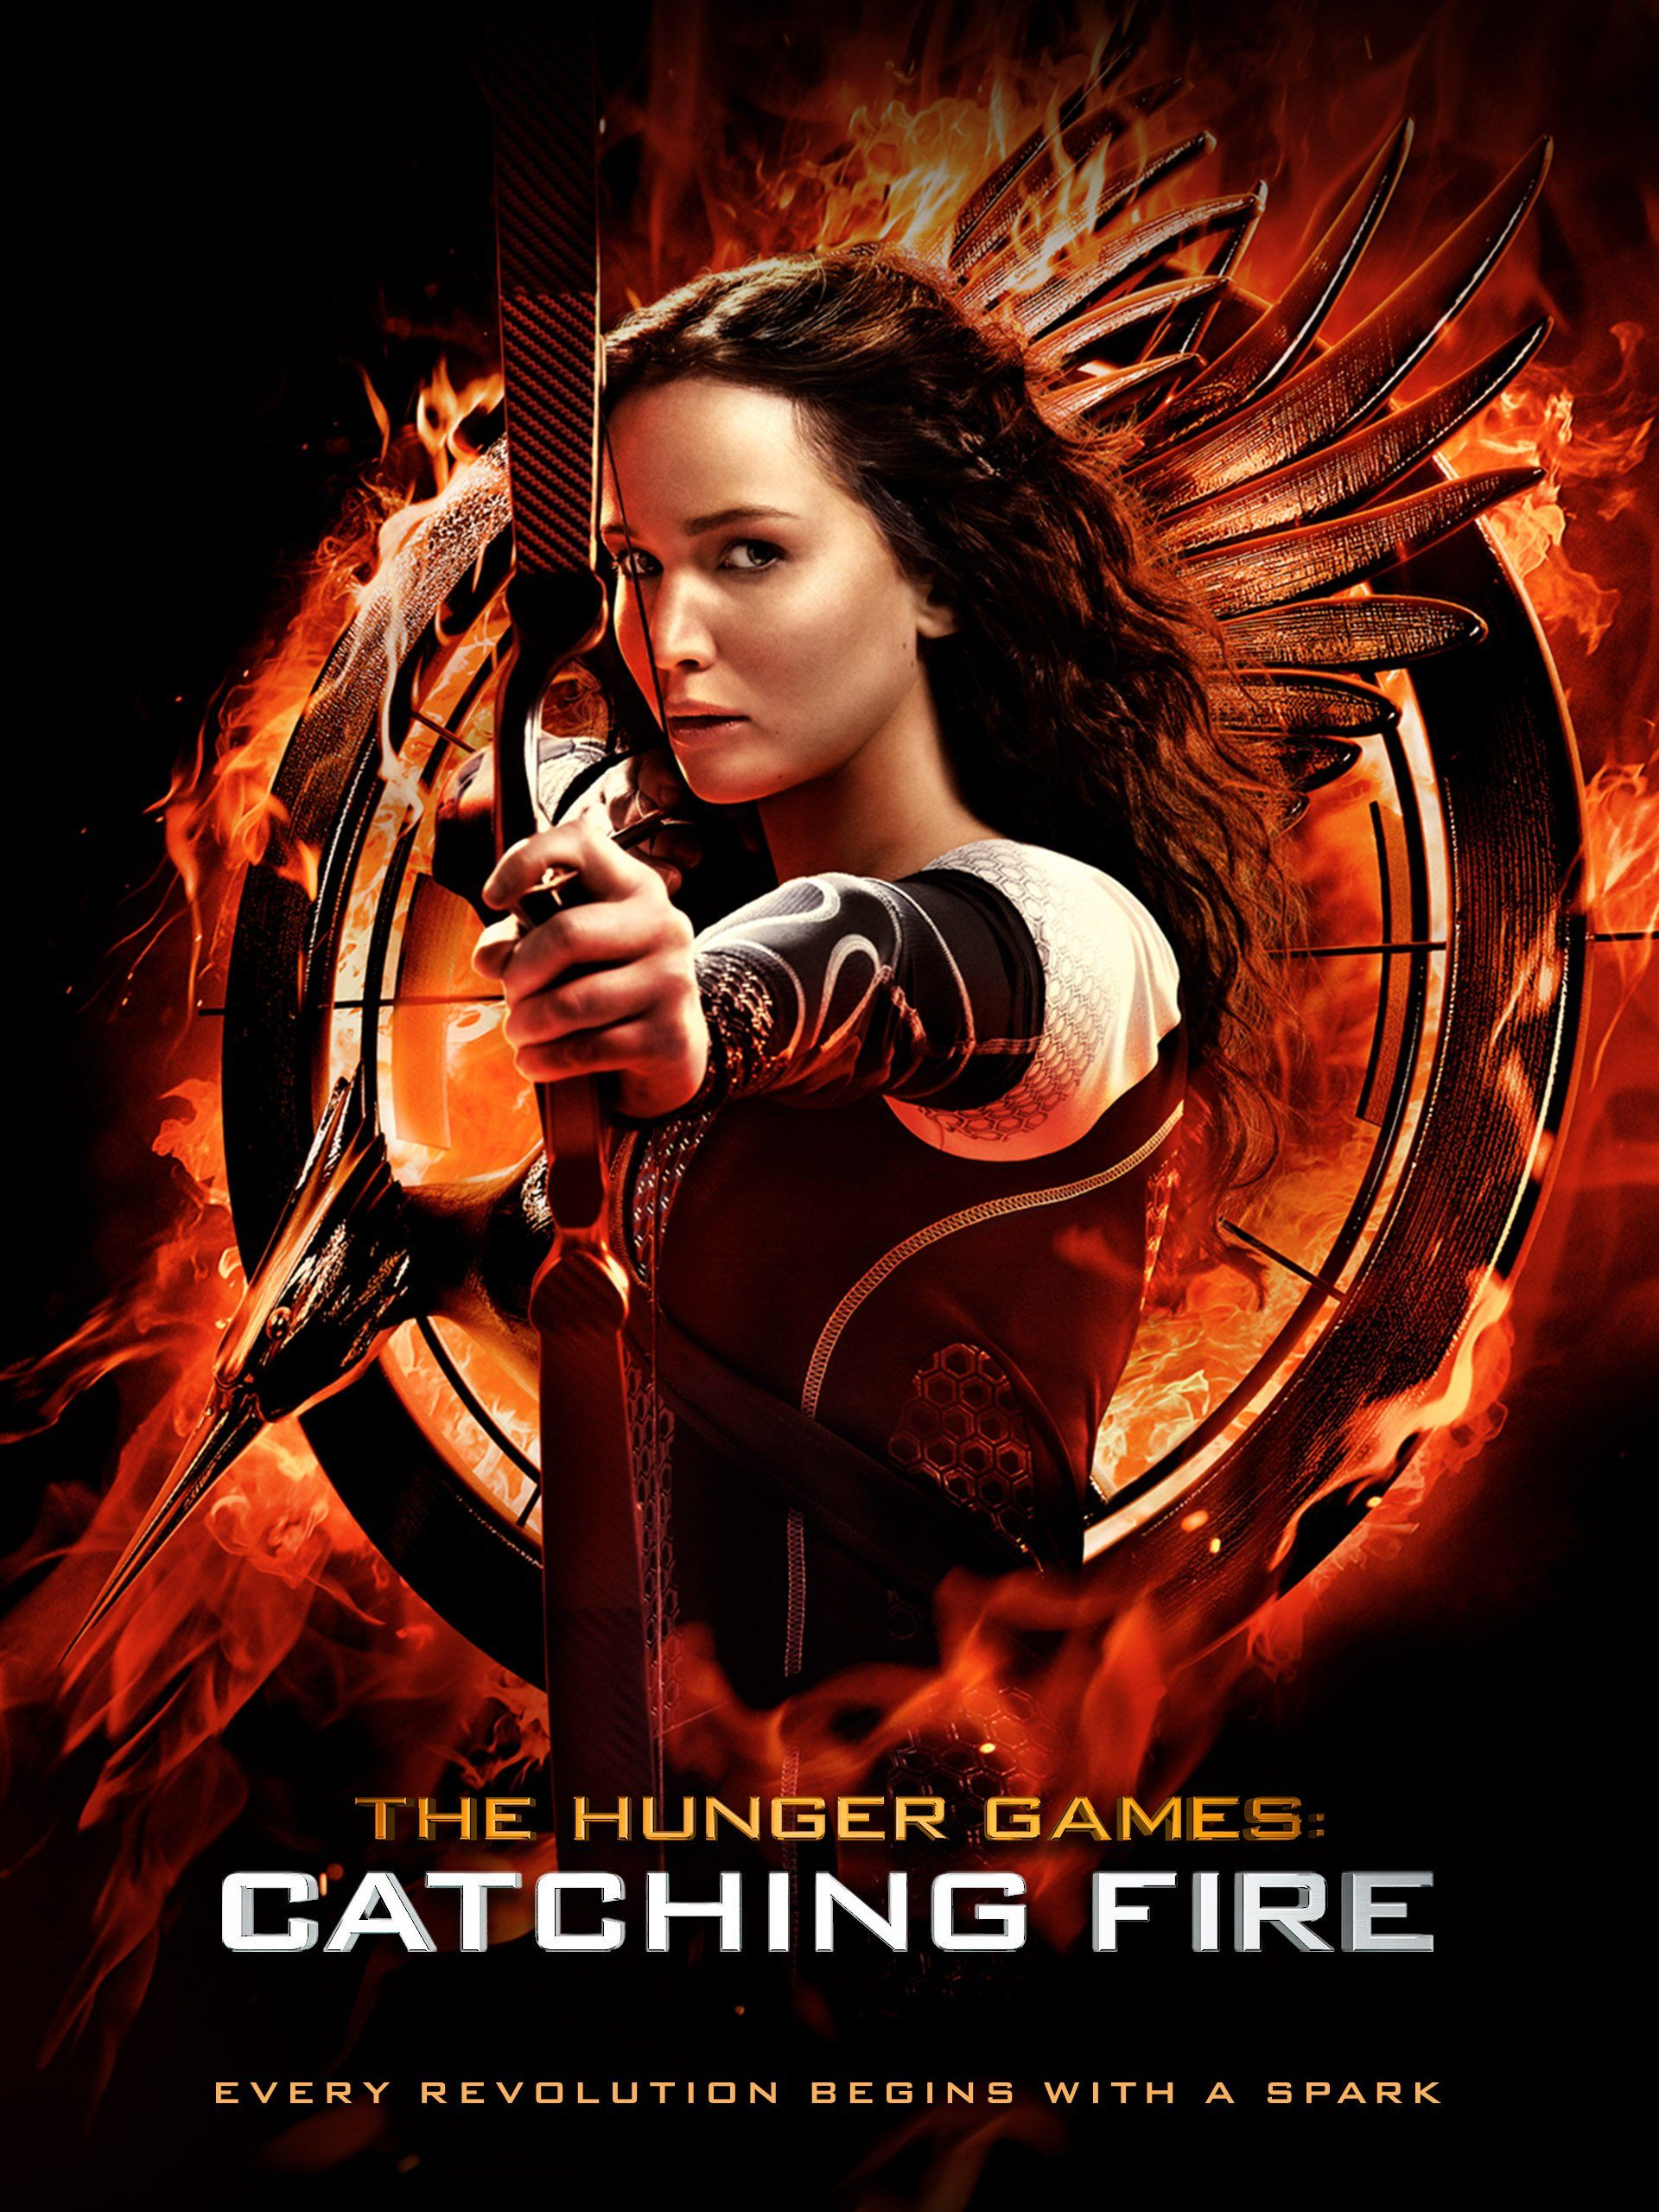 The Hunger Games Catching Fire [HD] Hunger games